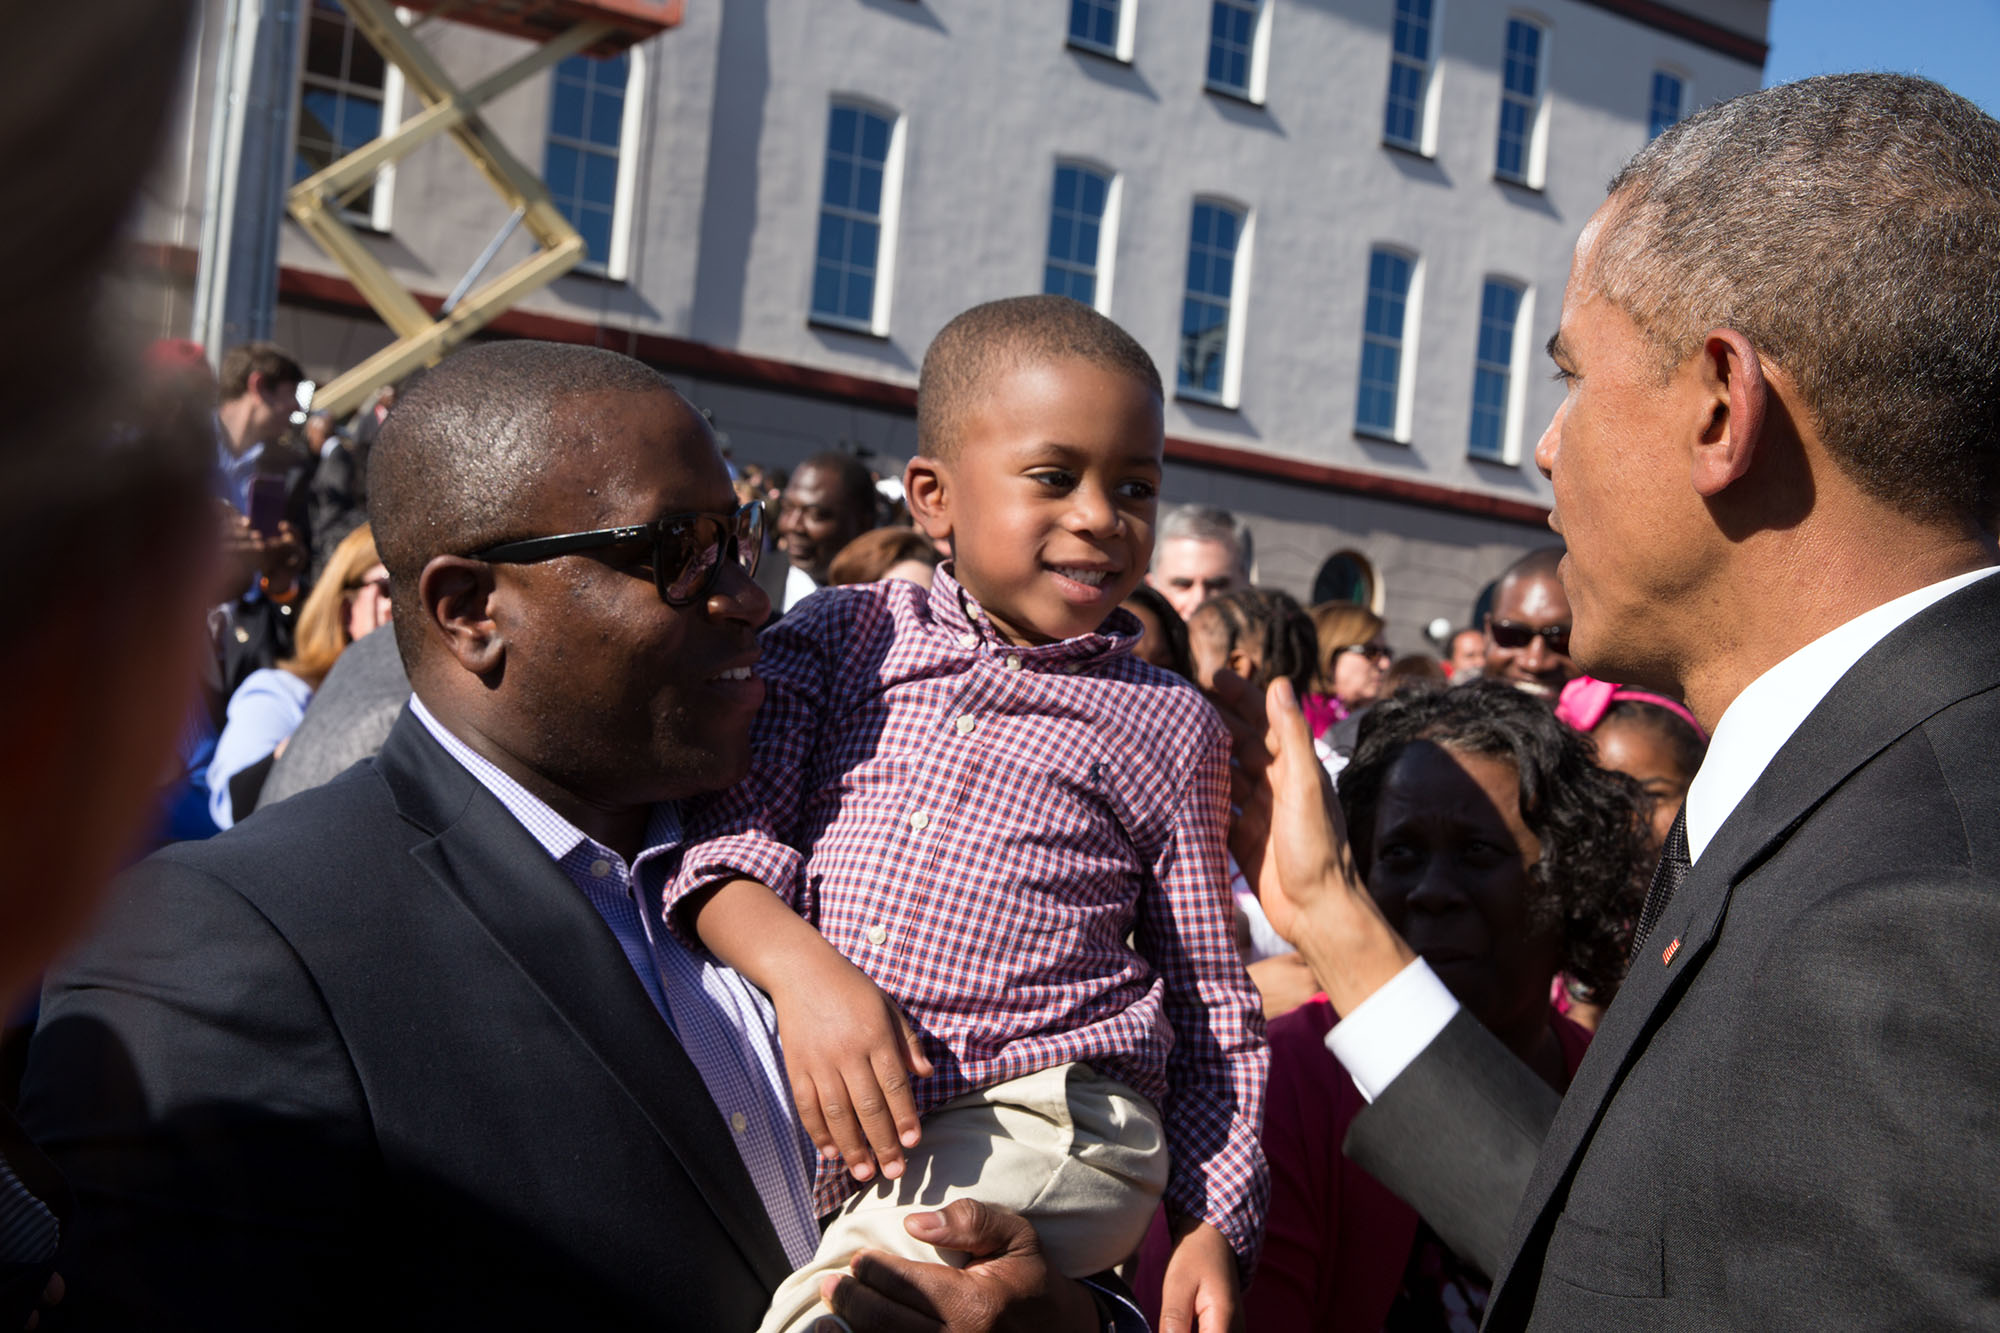 The President greets a youngster in the crowd. (Official White House Photo by Pete Souza)